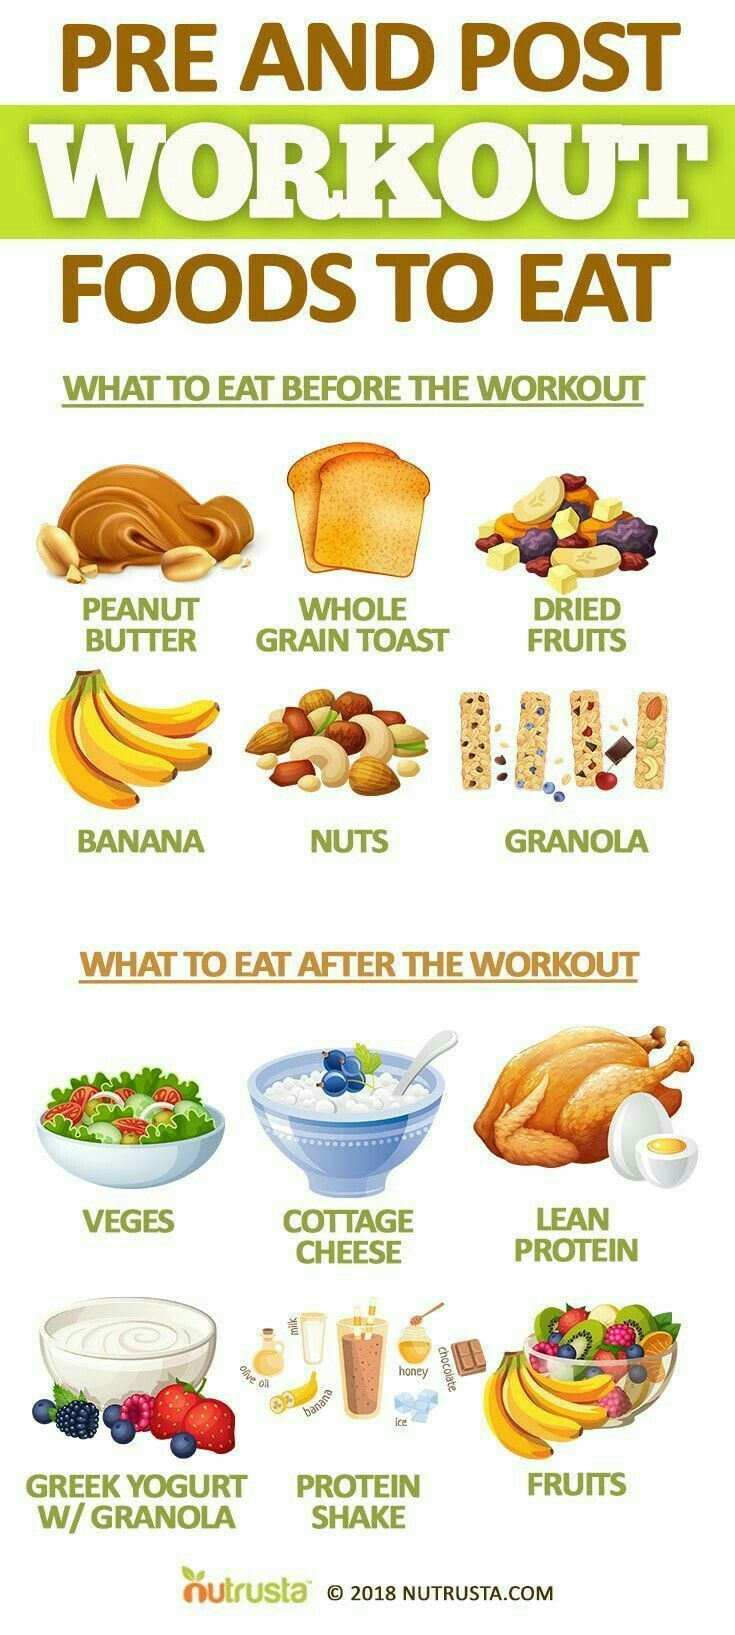 Pin By Lucia Guillen On Prsnl Post Workout Food Workout Food Pre Workout Food